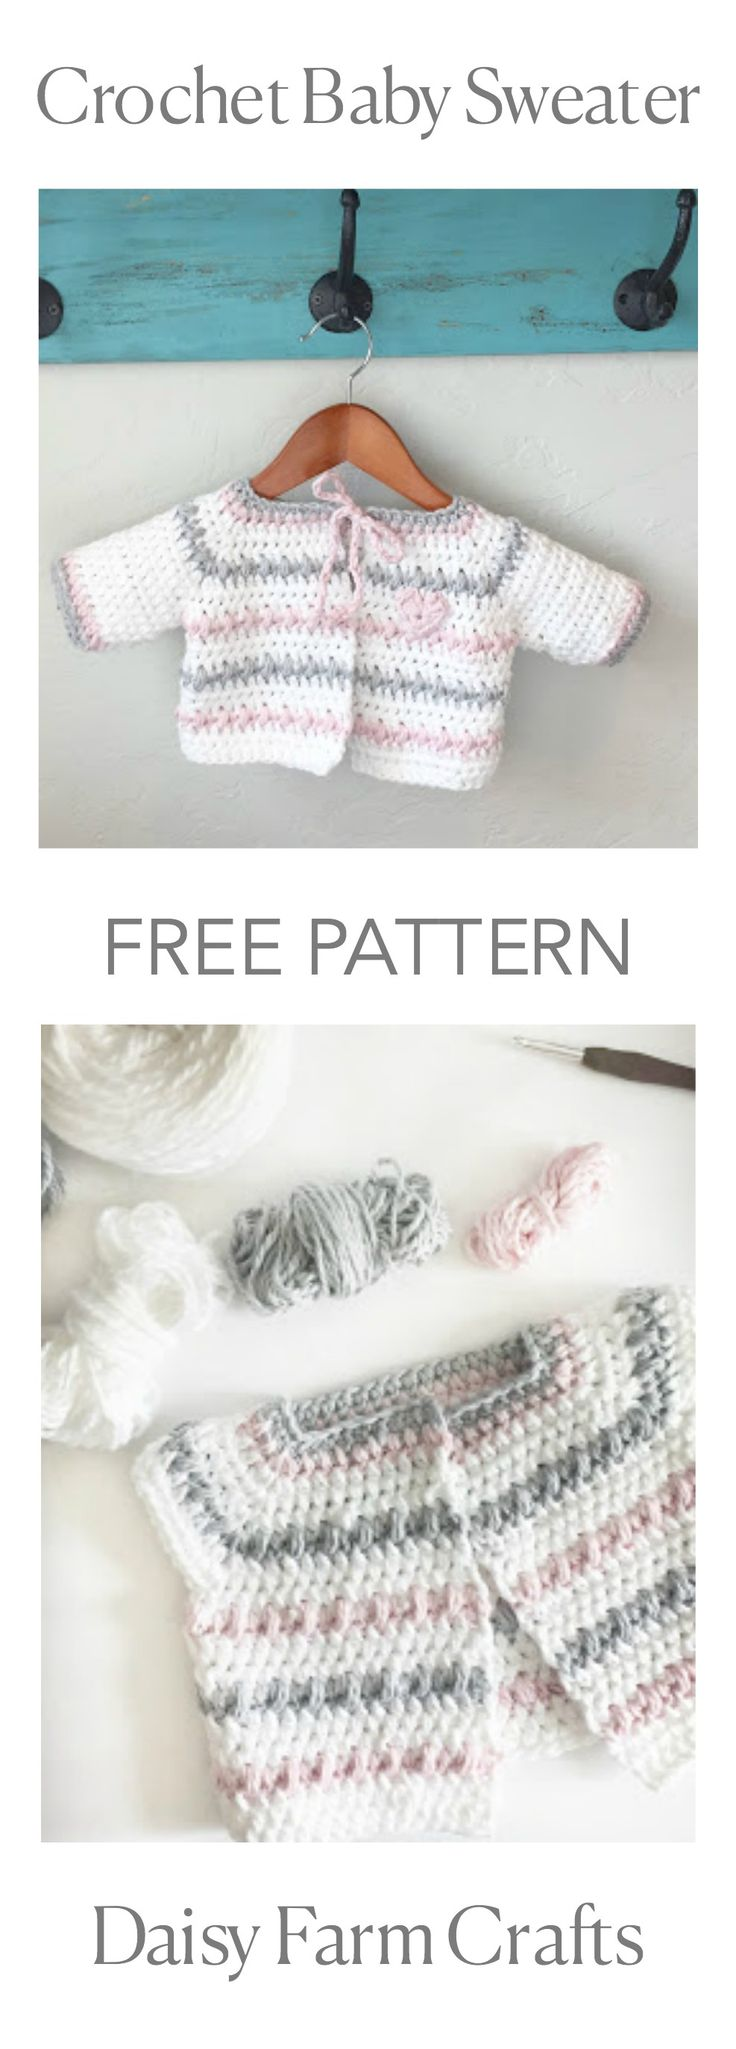 FREE PATTERN - Crochet Baby Sweater